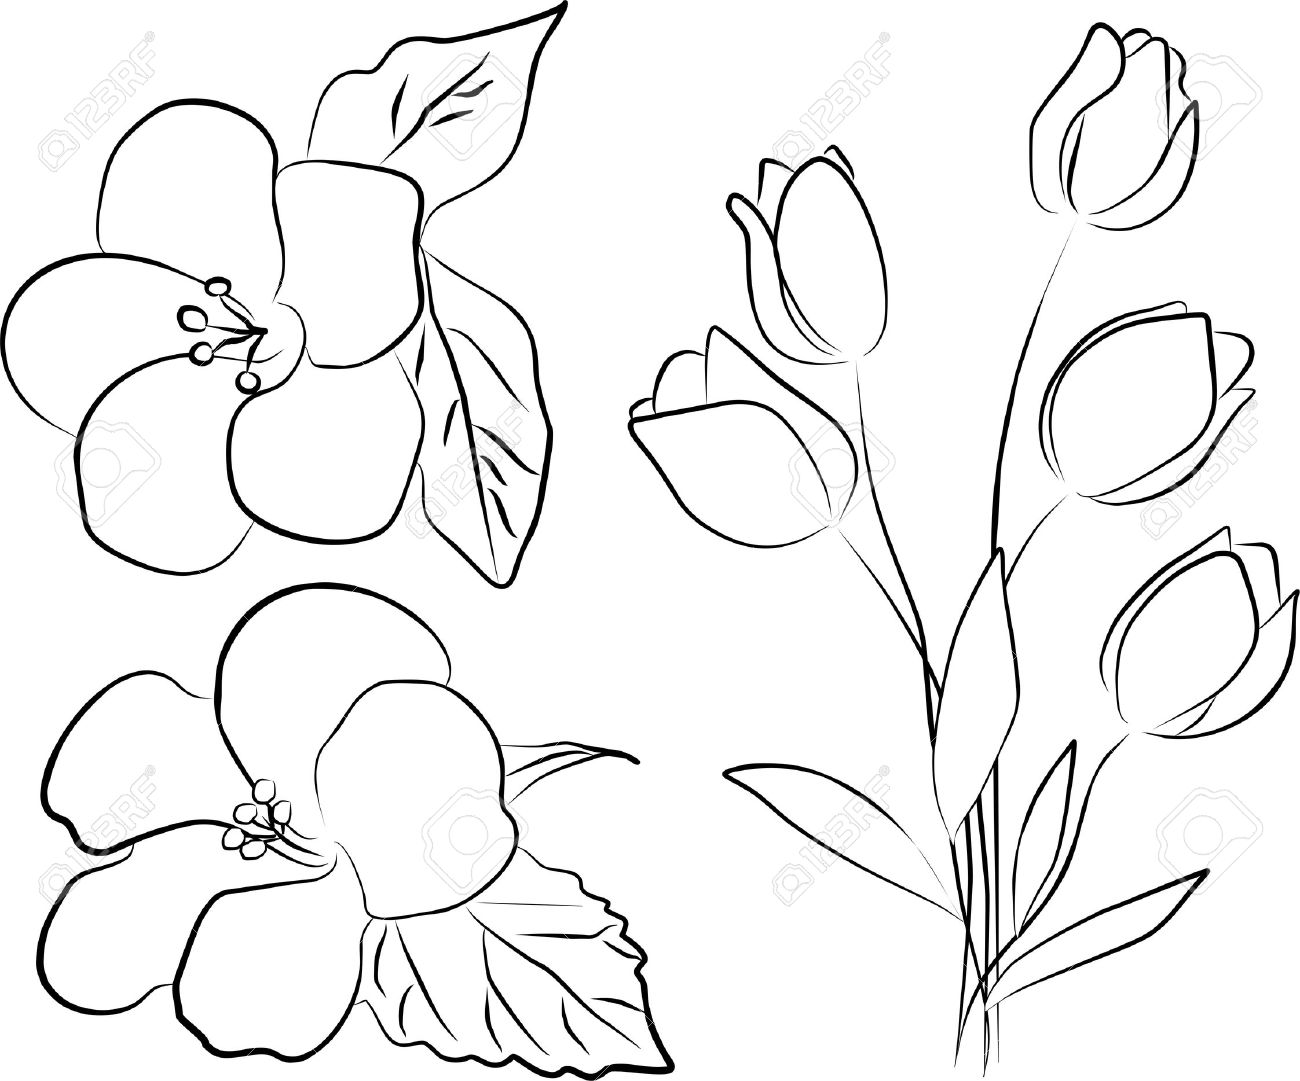 how to draw bunch of flowers step by step flower bouquets drawing at getdrawings free download how flowers step draw step bunch to of by